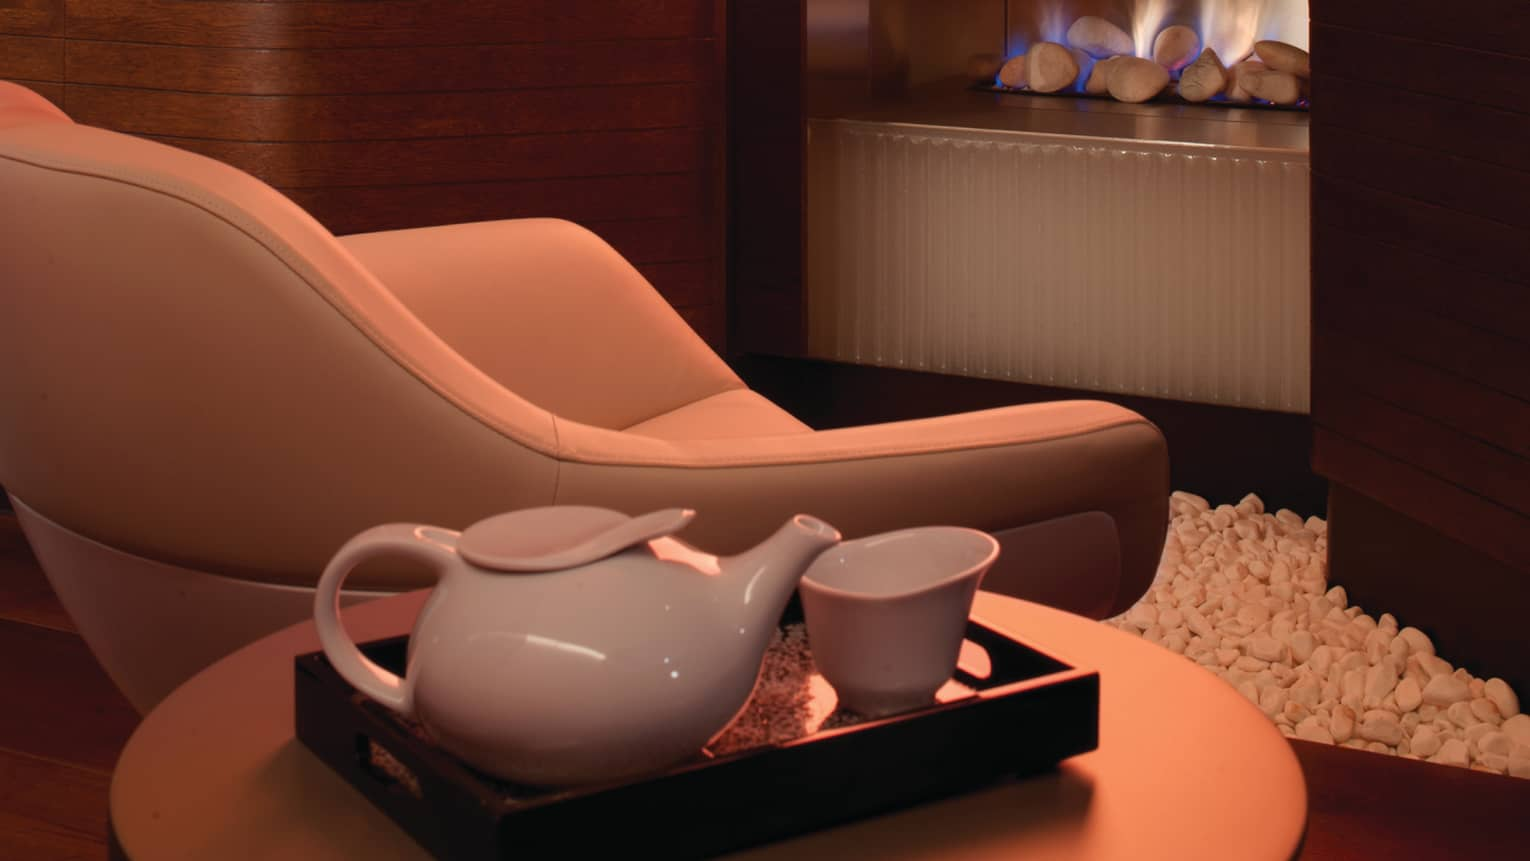 Modern white tea pot, cup on tray by leather chair, fireplace in background